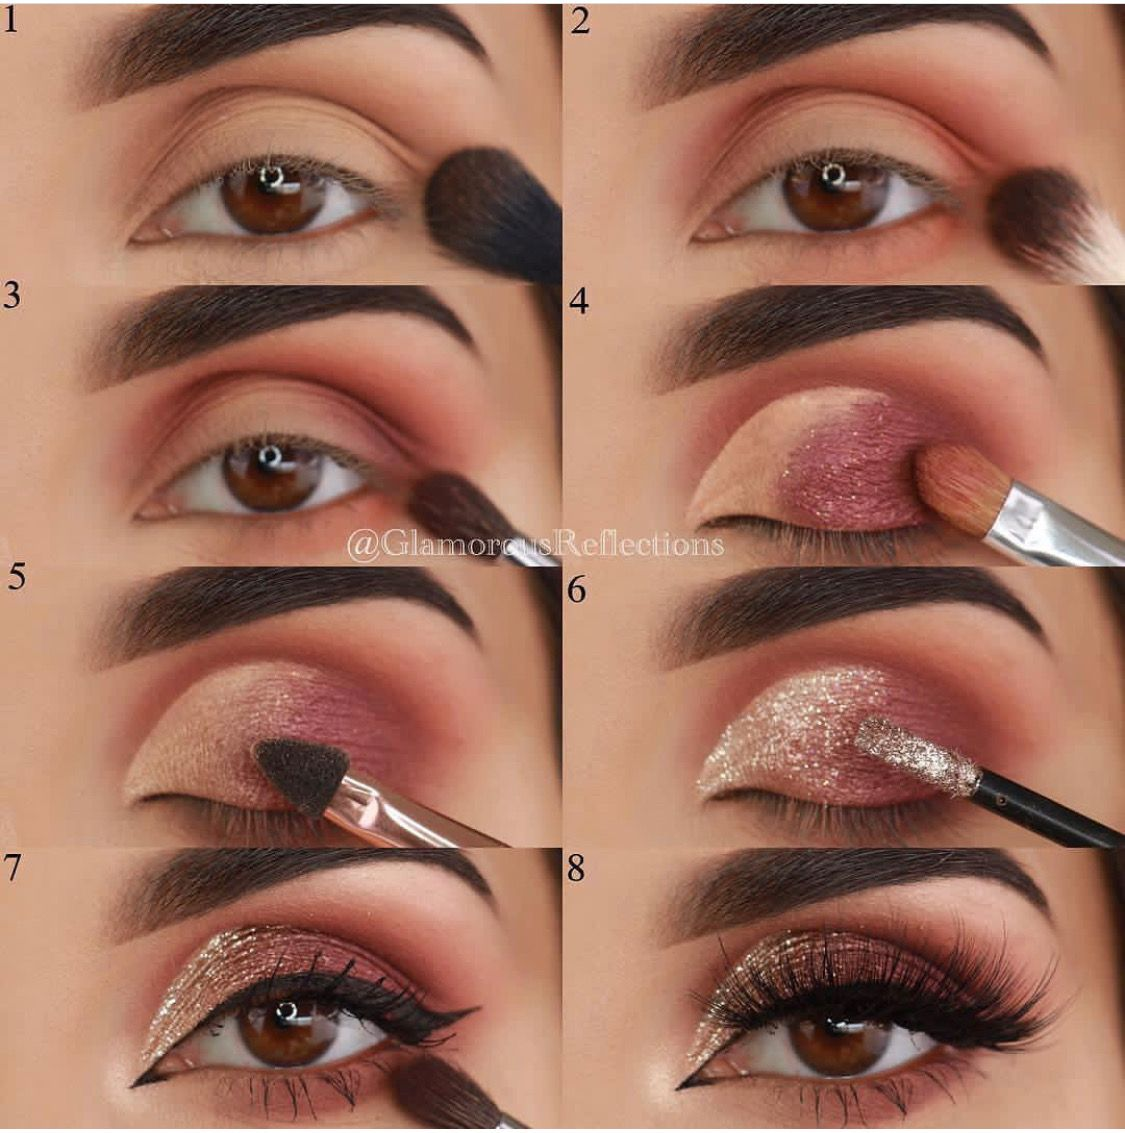 Pin by Jessica Gifford on Makeup; Eyes | Beauty makeup ...